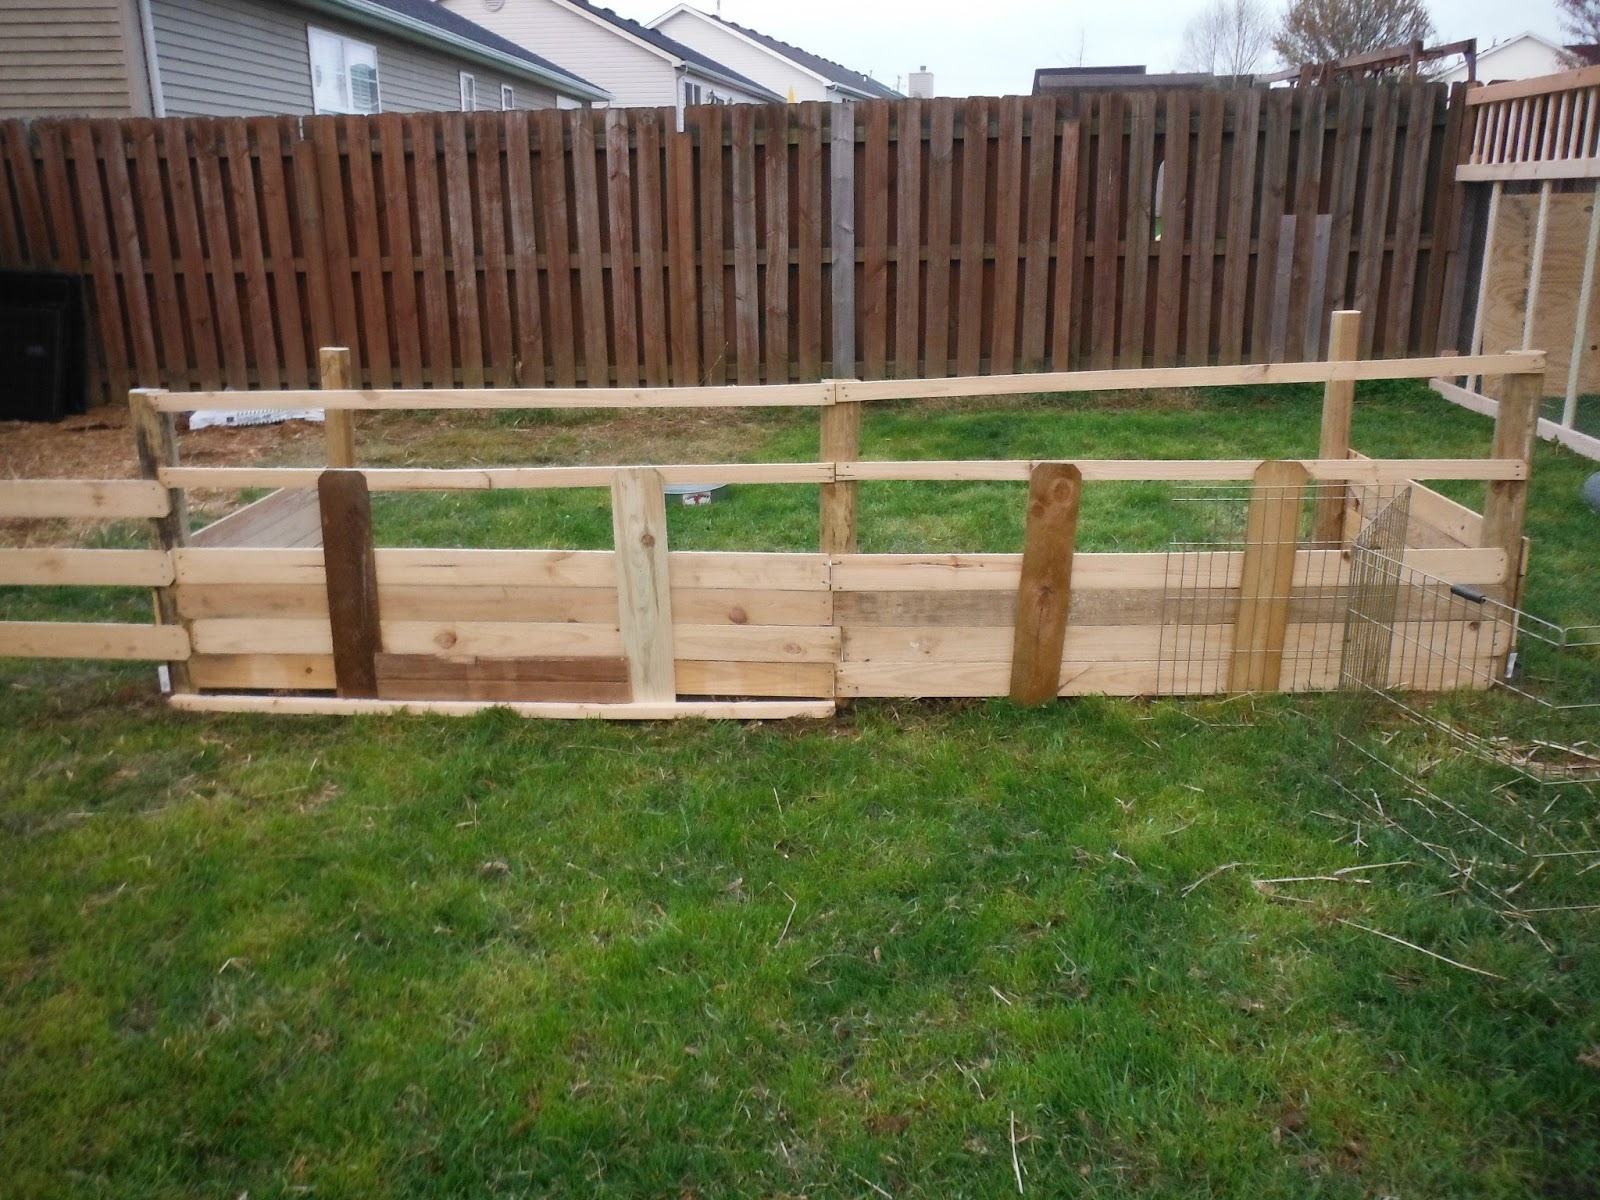 Suburban Backyard Farming : Suburban Backyard Farm Phase 3 and 4 of our Backyard Farm project